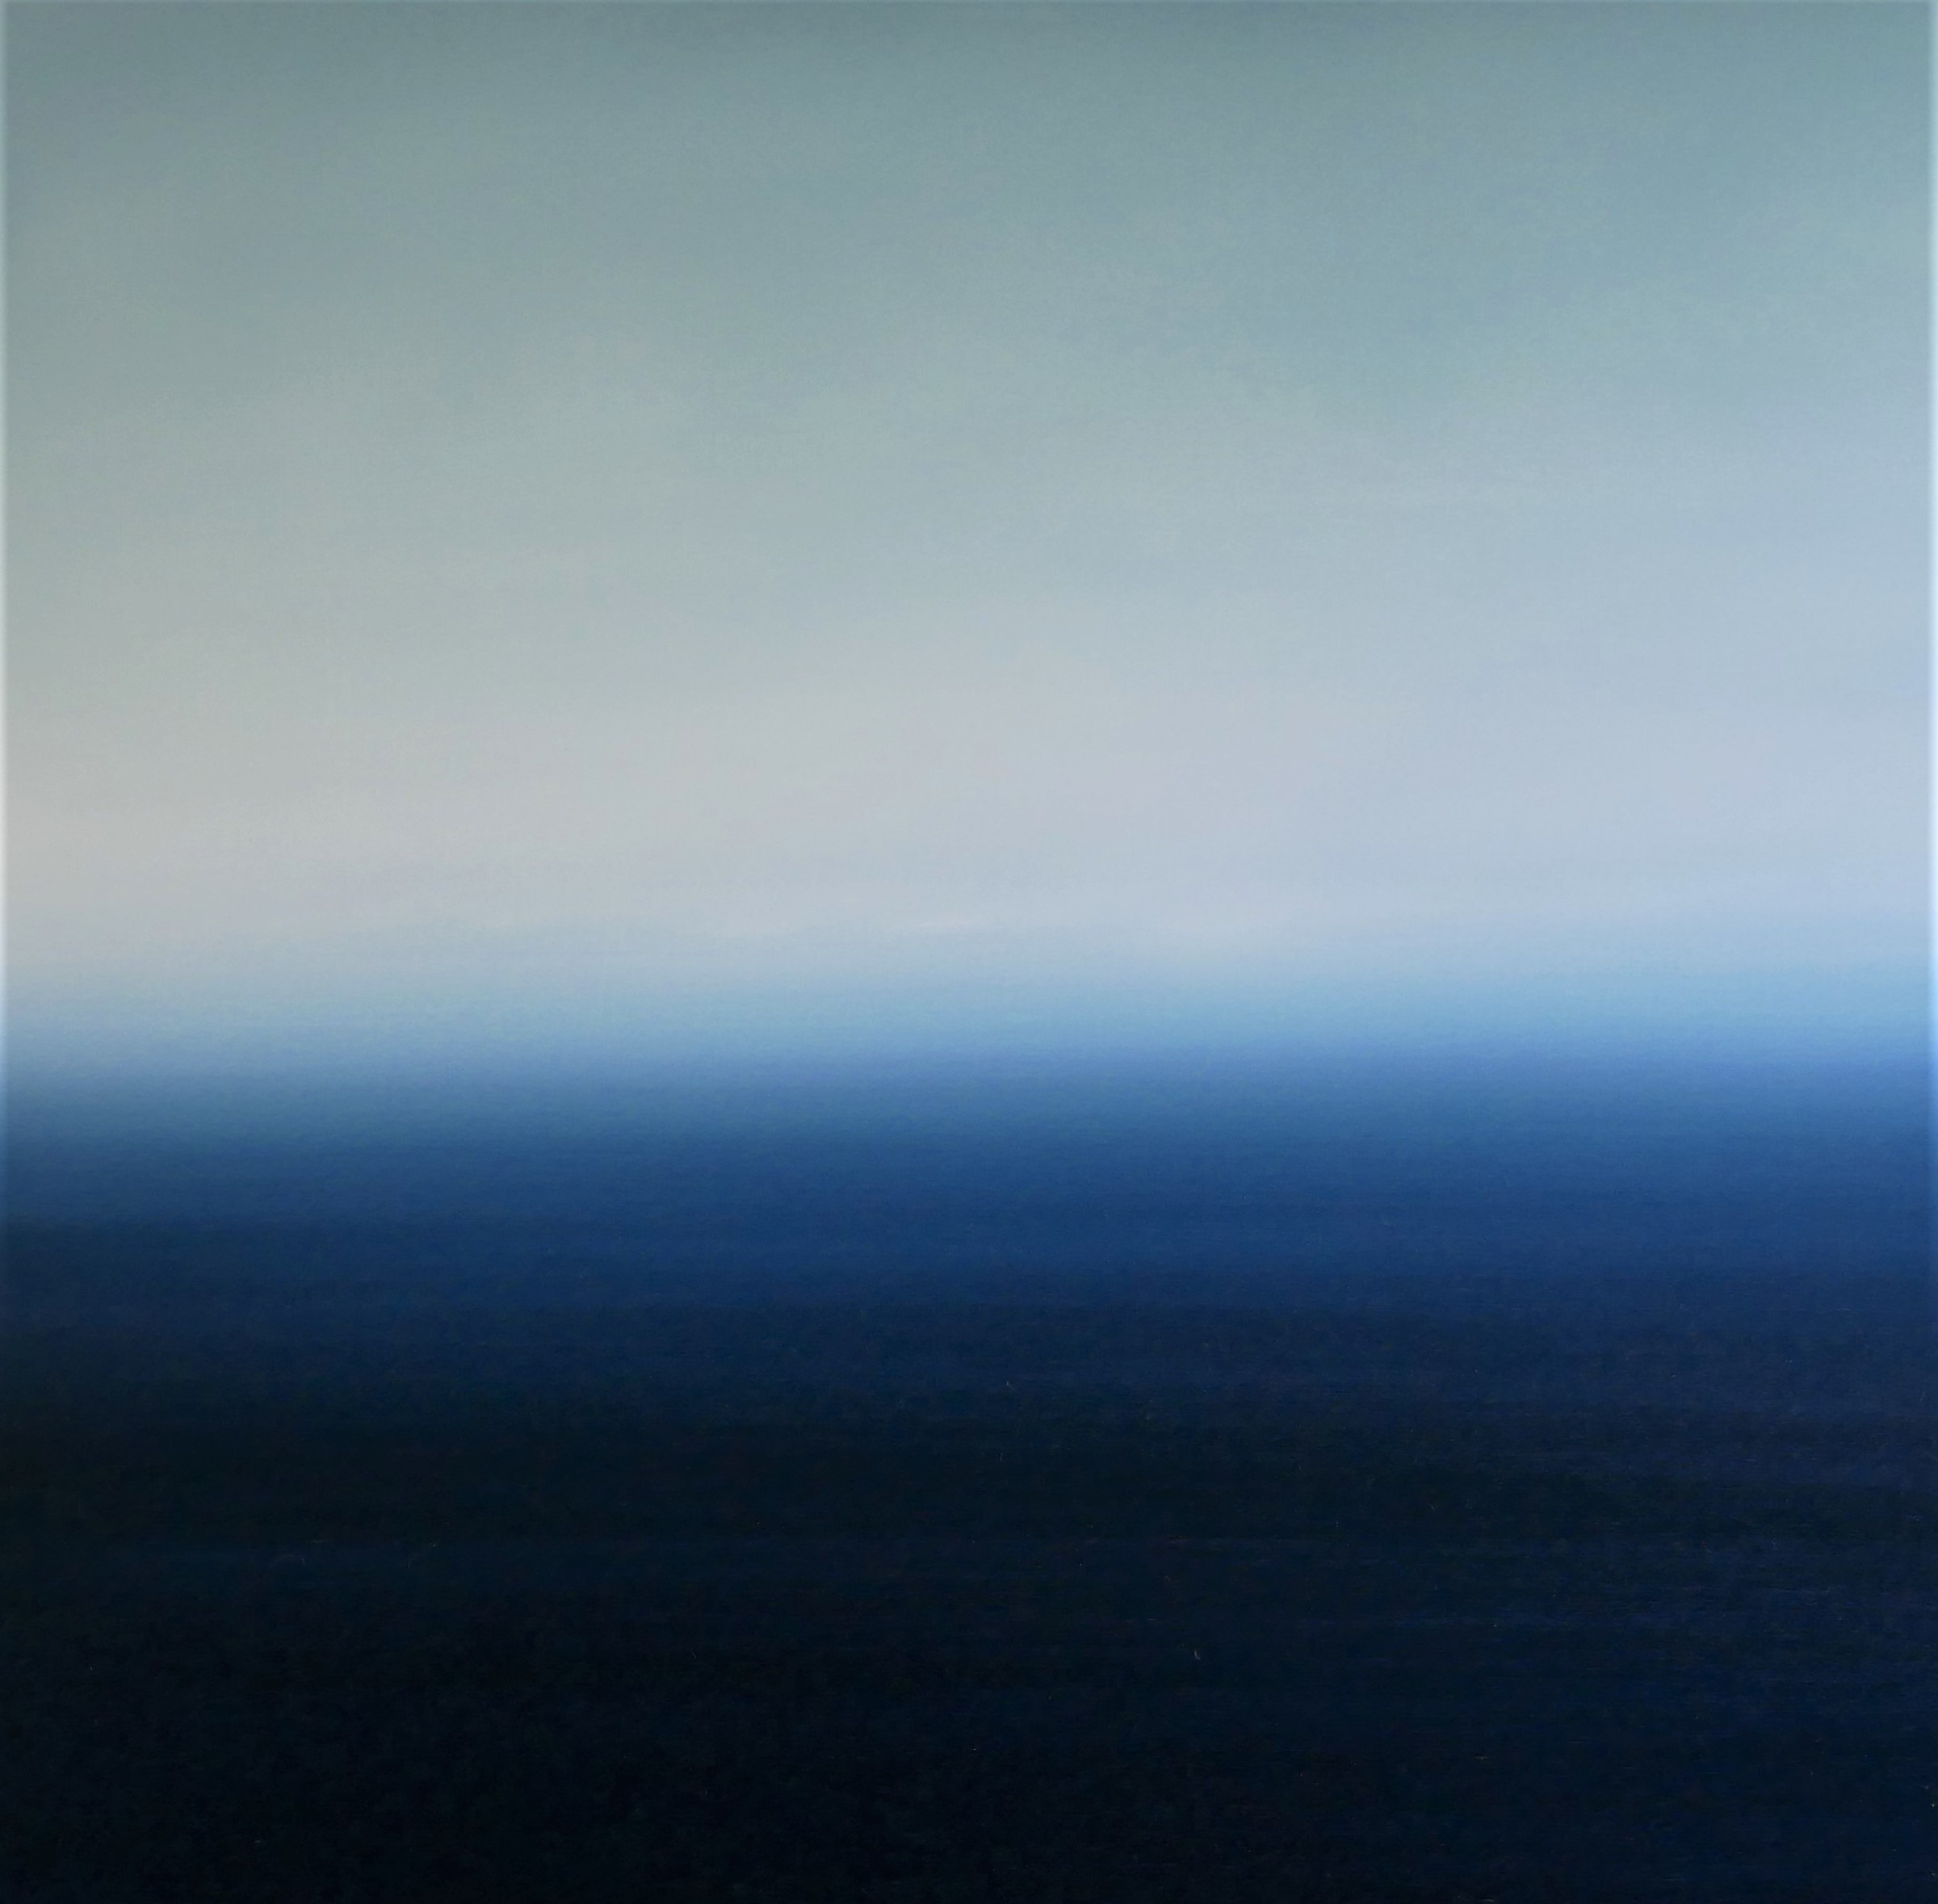 "<span class=""link fancybox-details-link""><a href=""/artists/78-martyn-perryman/works/6555-martyn-perryman-distant-light-st-ives-3-2019/"">View Detail Page</a></span><div class=""artist""><strong>Martyn Perryman</strong></div> <div class=""title""><em>Distant Light St Ives 3</em>, 2019</div> <div class=""medium"">Oil on canvas, framed</div> <div class=""dimensions"">h. 90 x w. 90 cm </div><div class=""copyright_line"">Ownart: £110 x 10 Months, 0 % APR</div>"